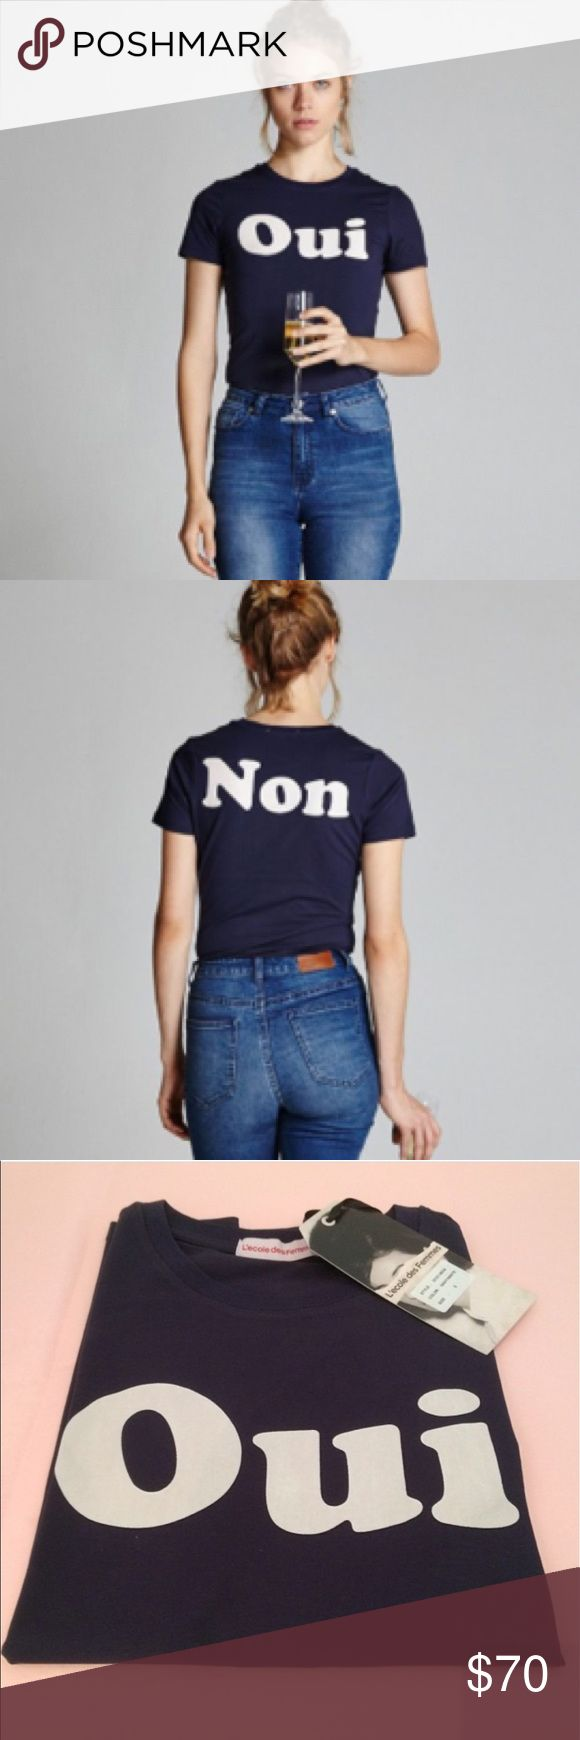 "L'ecole des Femmes OUI & NON navy tee NWT size SM Super cute brand new with tag attached- L'ecole des Femmes OUI/NON tee in navy size small. Length 22"", chest 31"", waist 26, sleeve length 5.5"" . Cotton/Lycra blend. Retails at $89 l'ecole Des Femmes Tops"